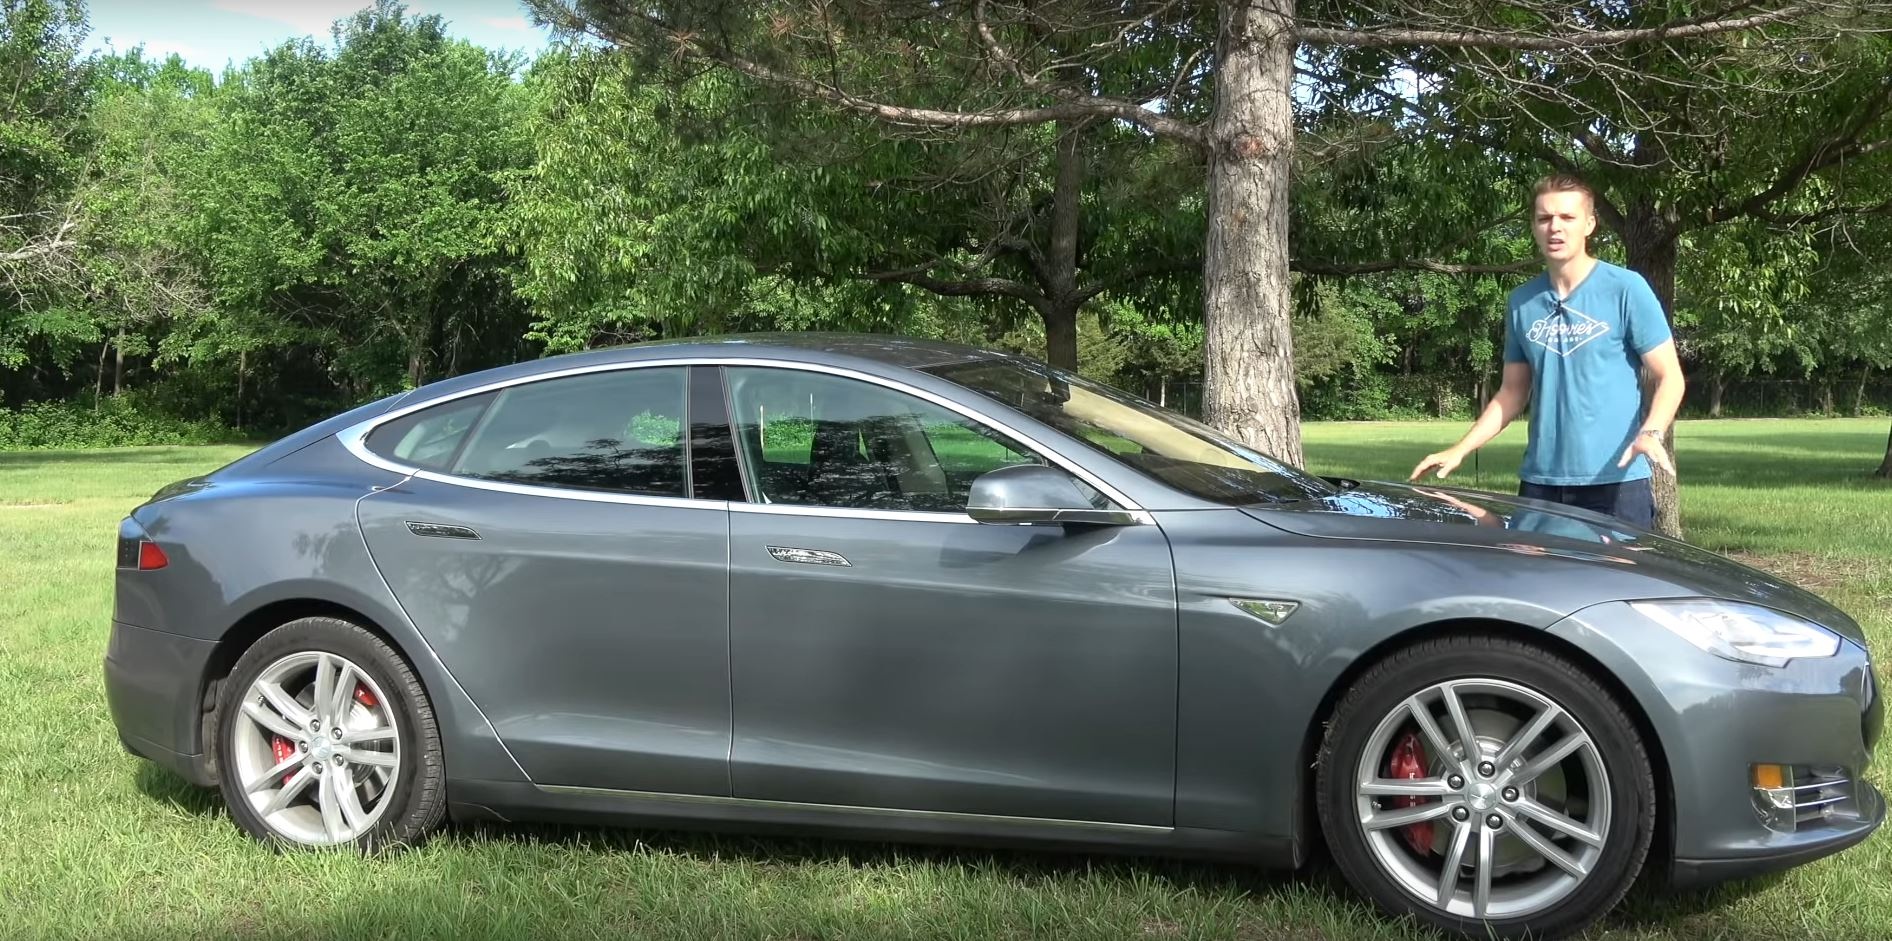 hoovies buys cheapest tesla model s in the usa at 33 500 autoevolution. Black Bedroom Furniture Sets. Home Design Ideas